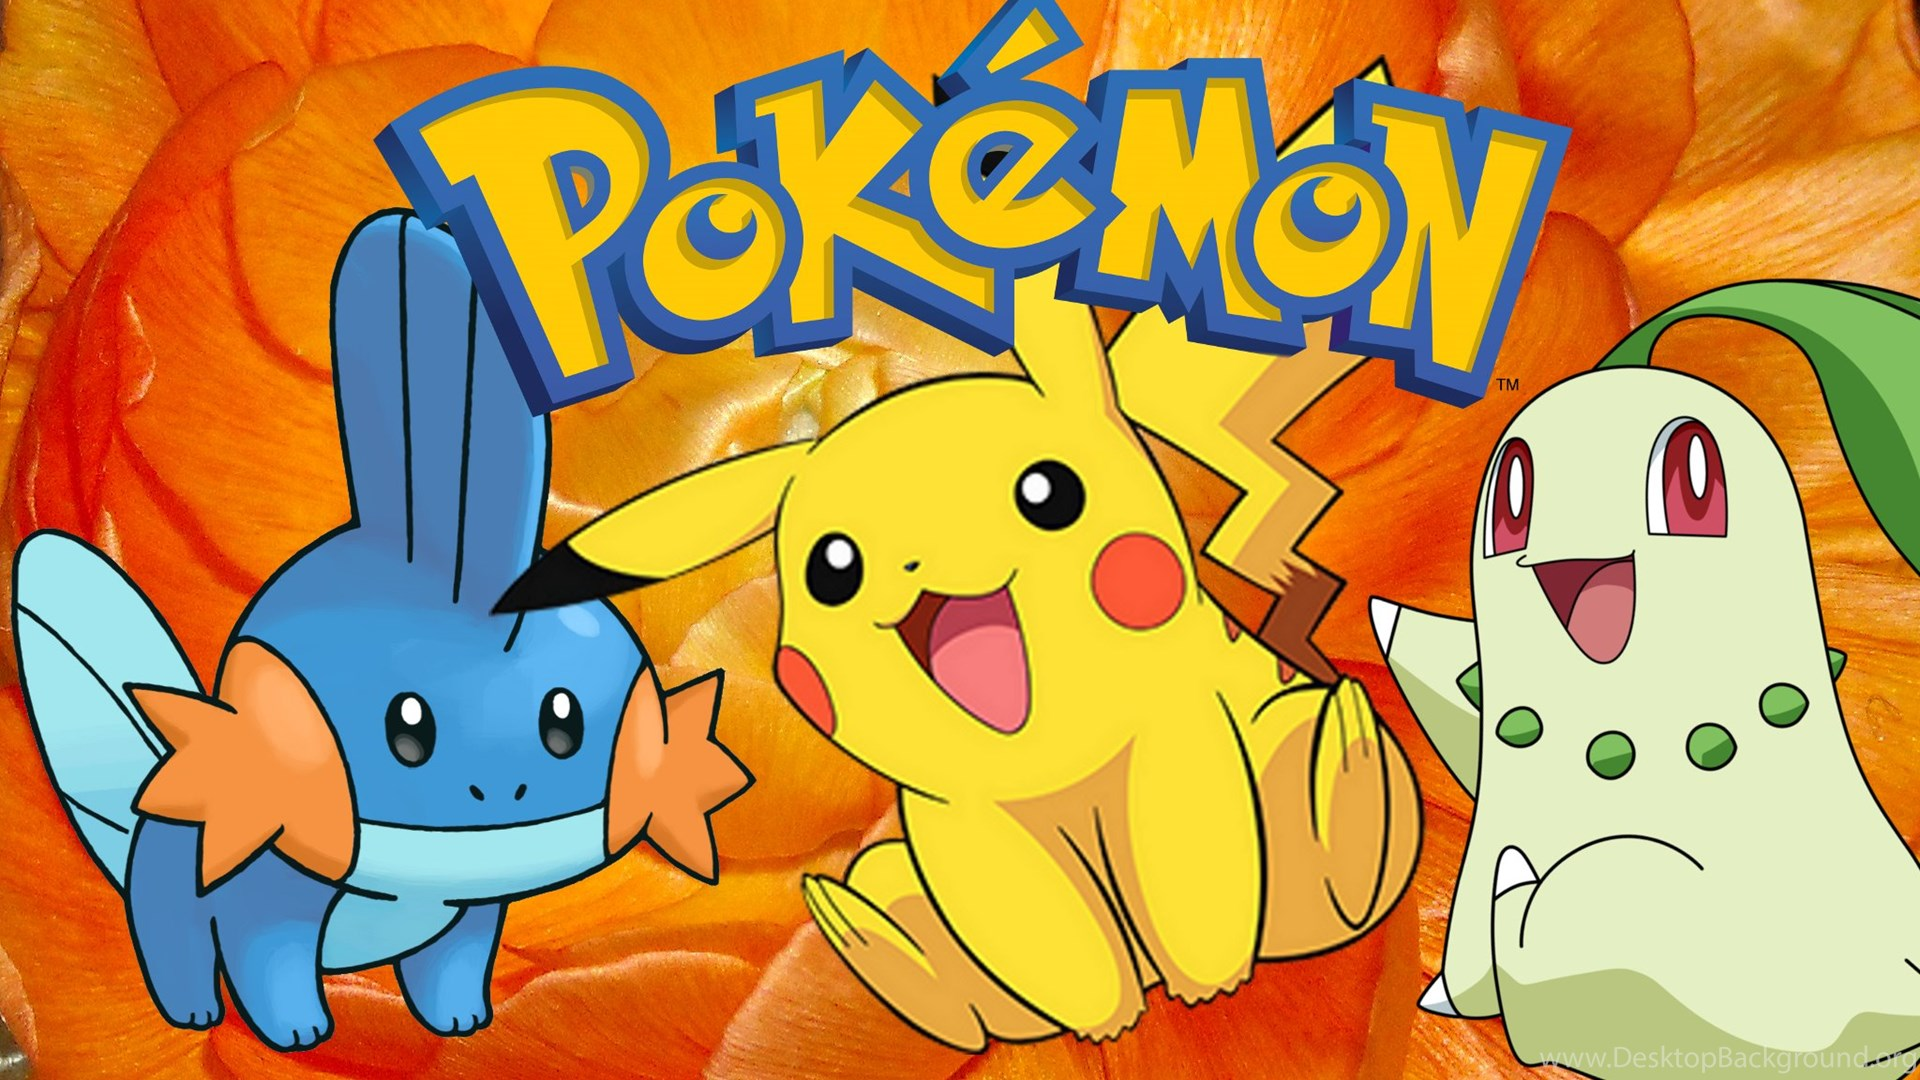 Pokemon Pictures That Are 2048 By 1152 Pixels: Pokemon Wallpapers Barbaras HD Wallpapers Desktop Background